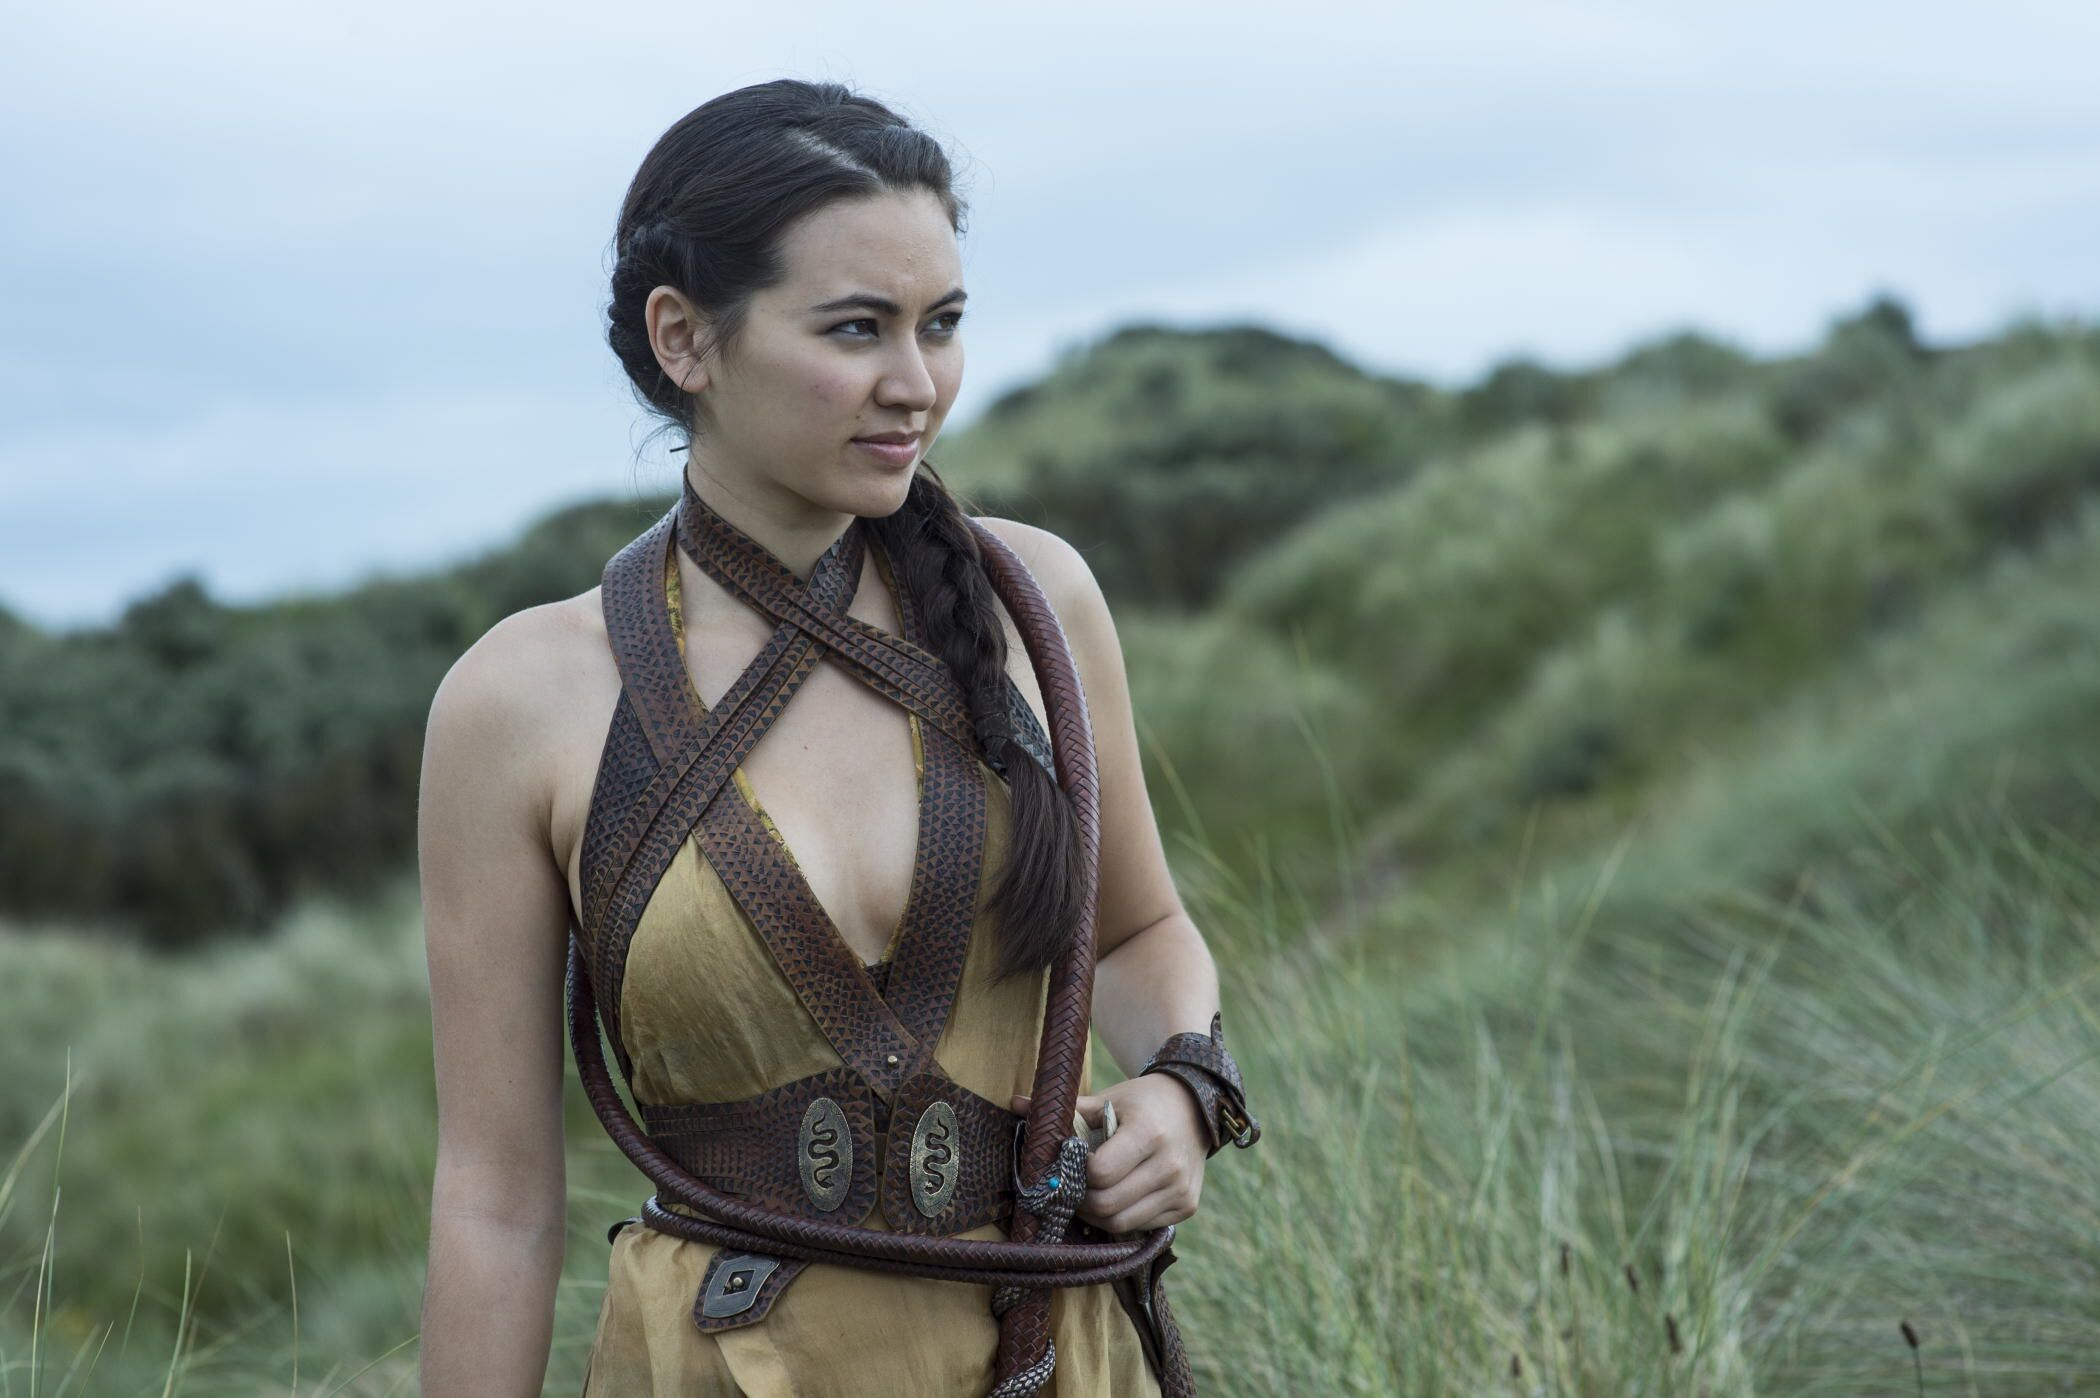 Jessica Henwick (Nymeria Sand) in talks to star in The Matrix 4